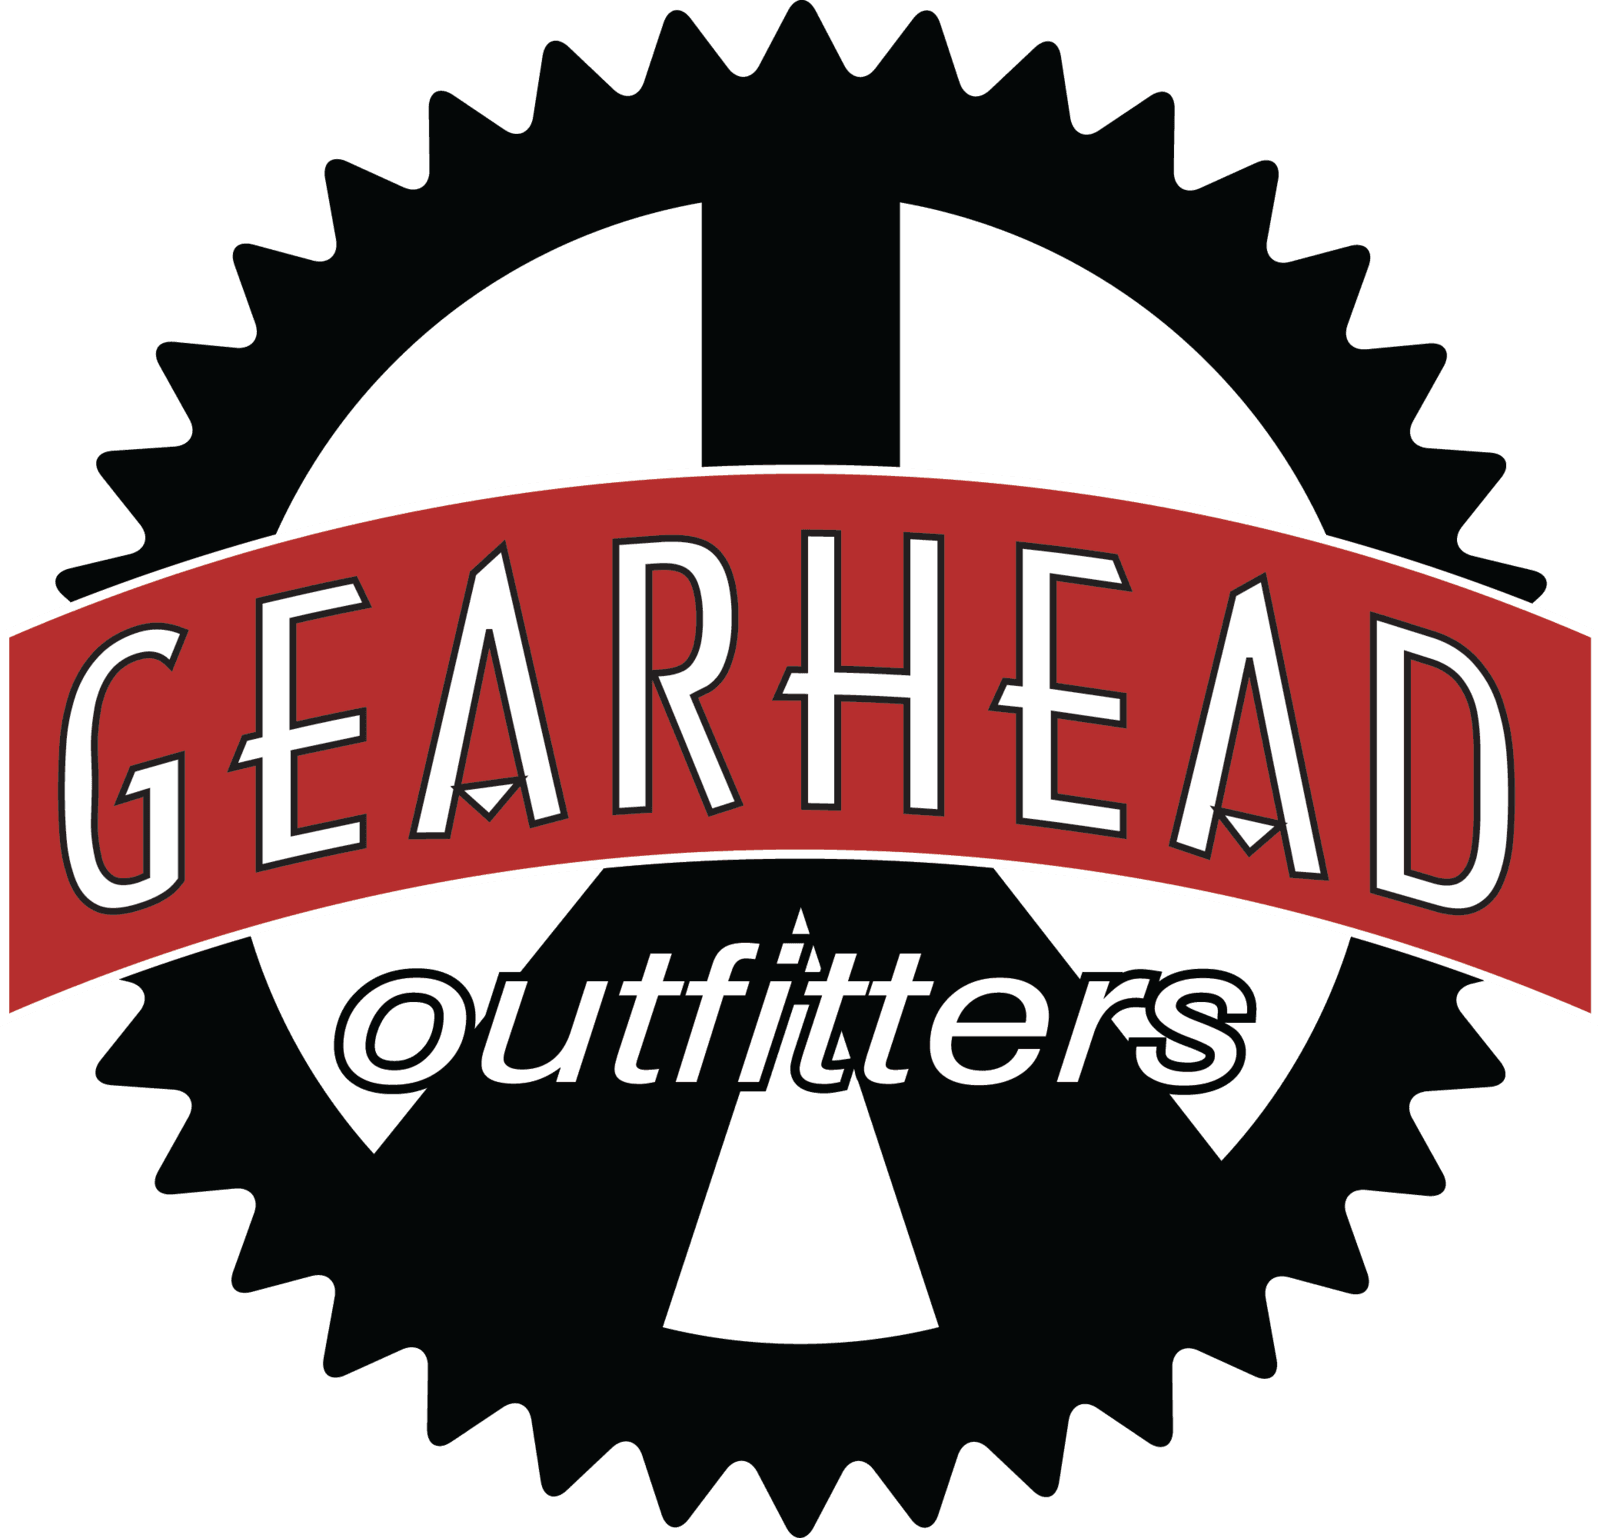 gearhead outfitters logo